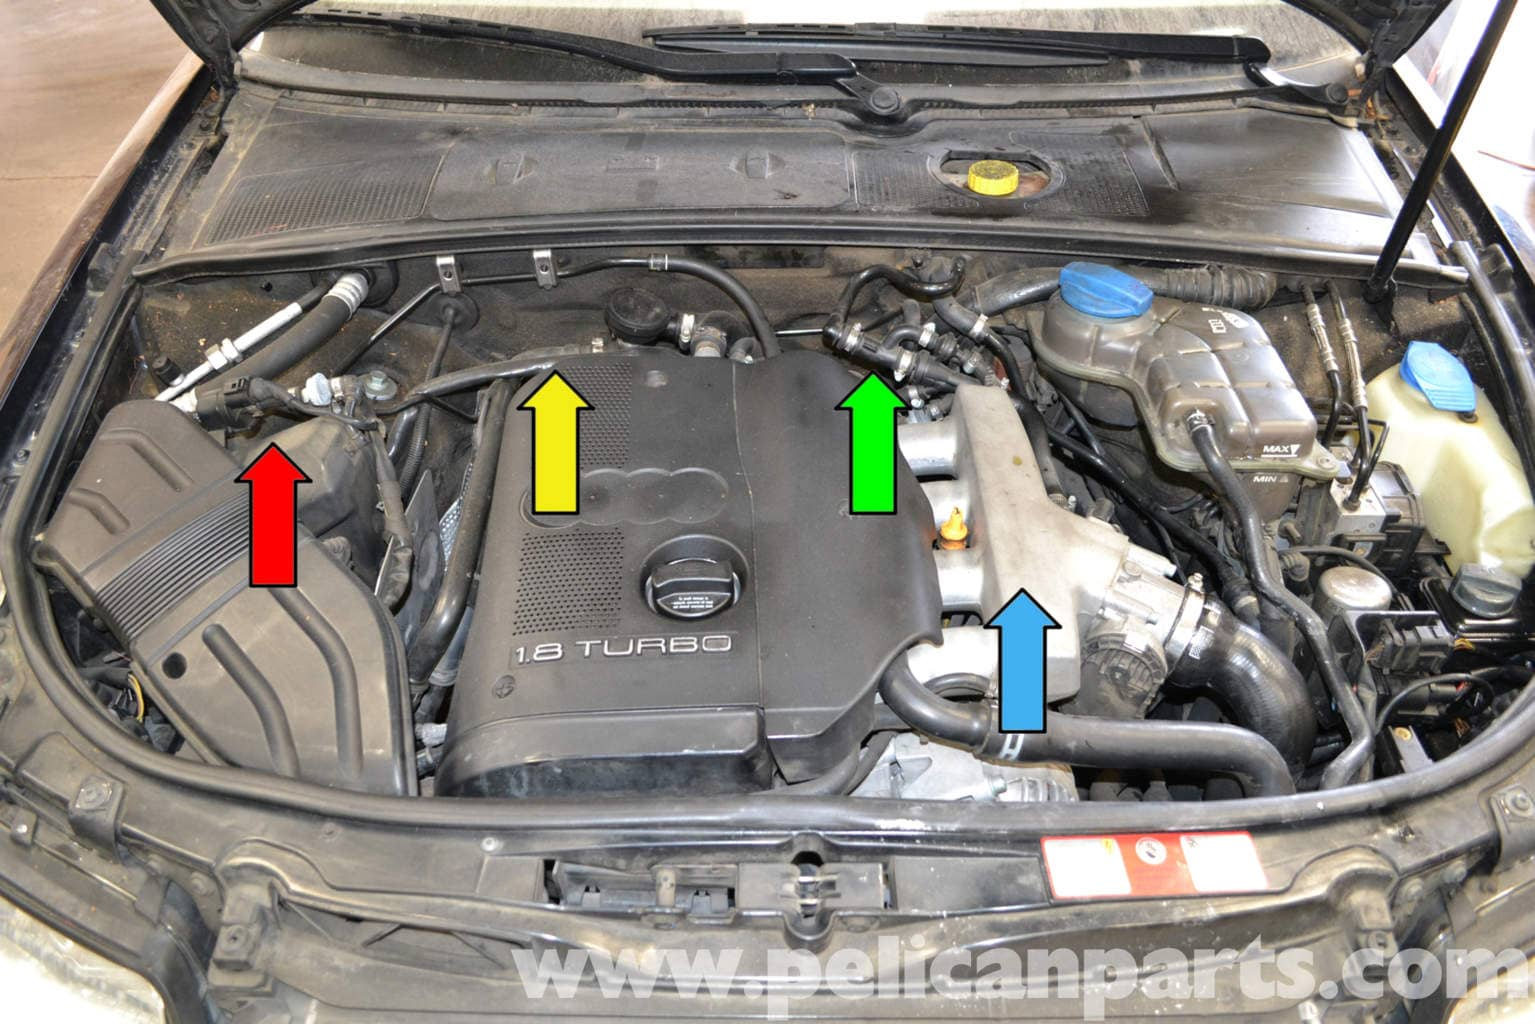 [SCHEMATICS_4CA]  Audi A4 B6 Fixing Common Vacuum Leaks (2002-2008) | Pelican Parts DIY  Maintenance Article | 1 8 Turbo Engine Diagram |  | Pelican Parts